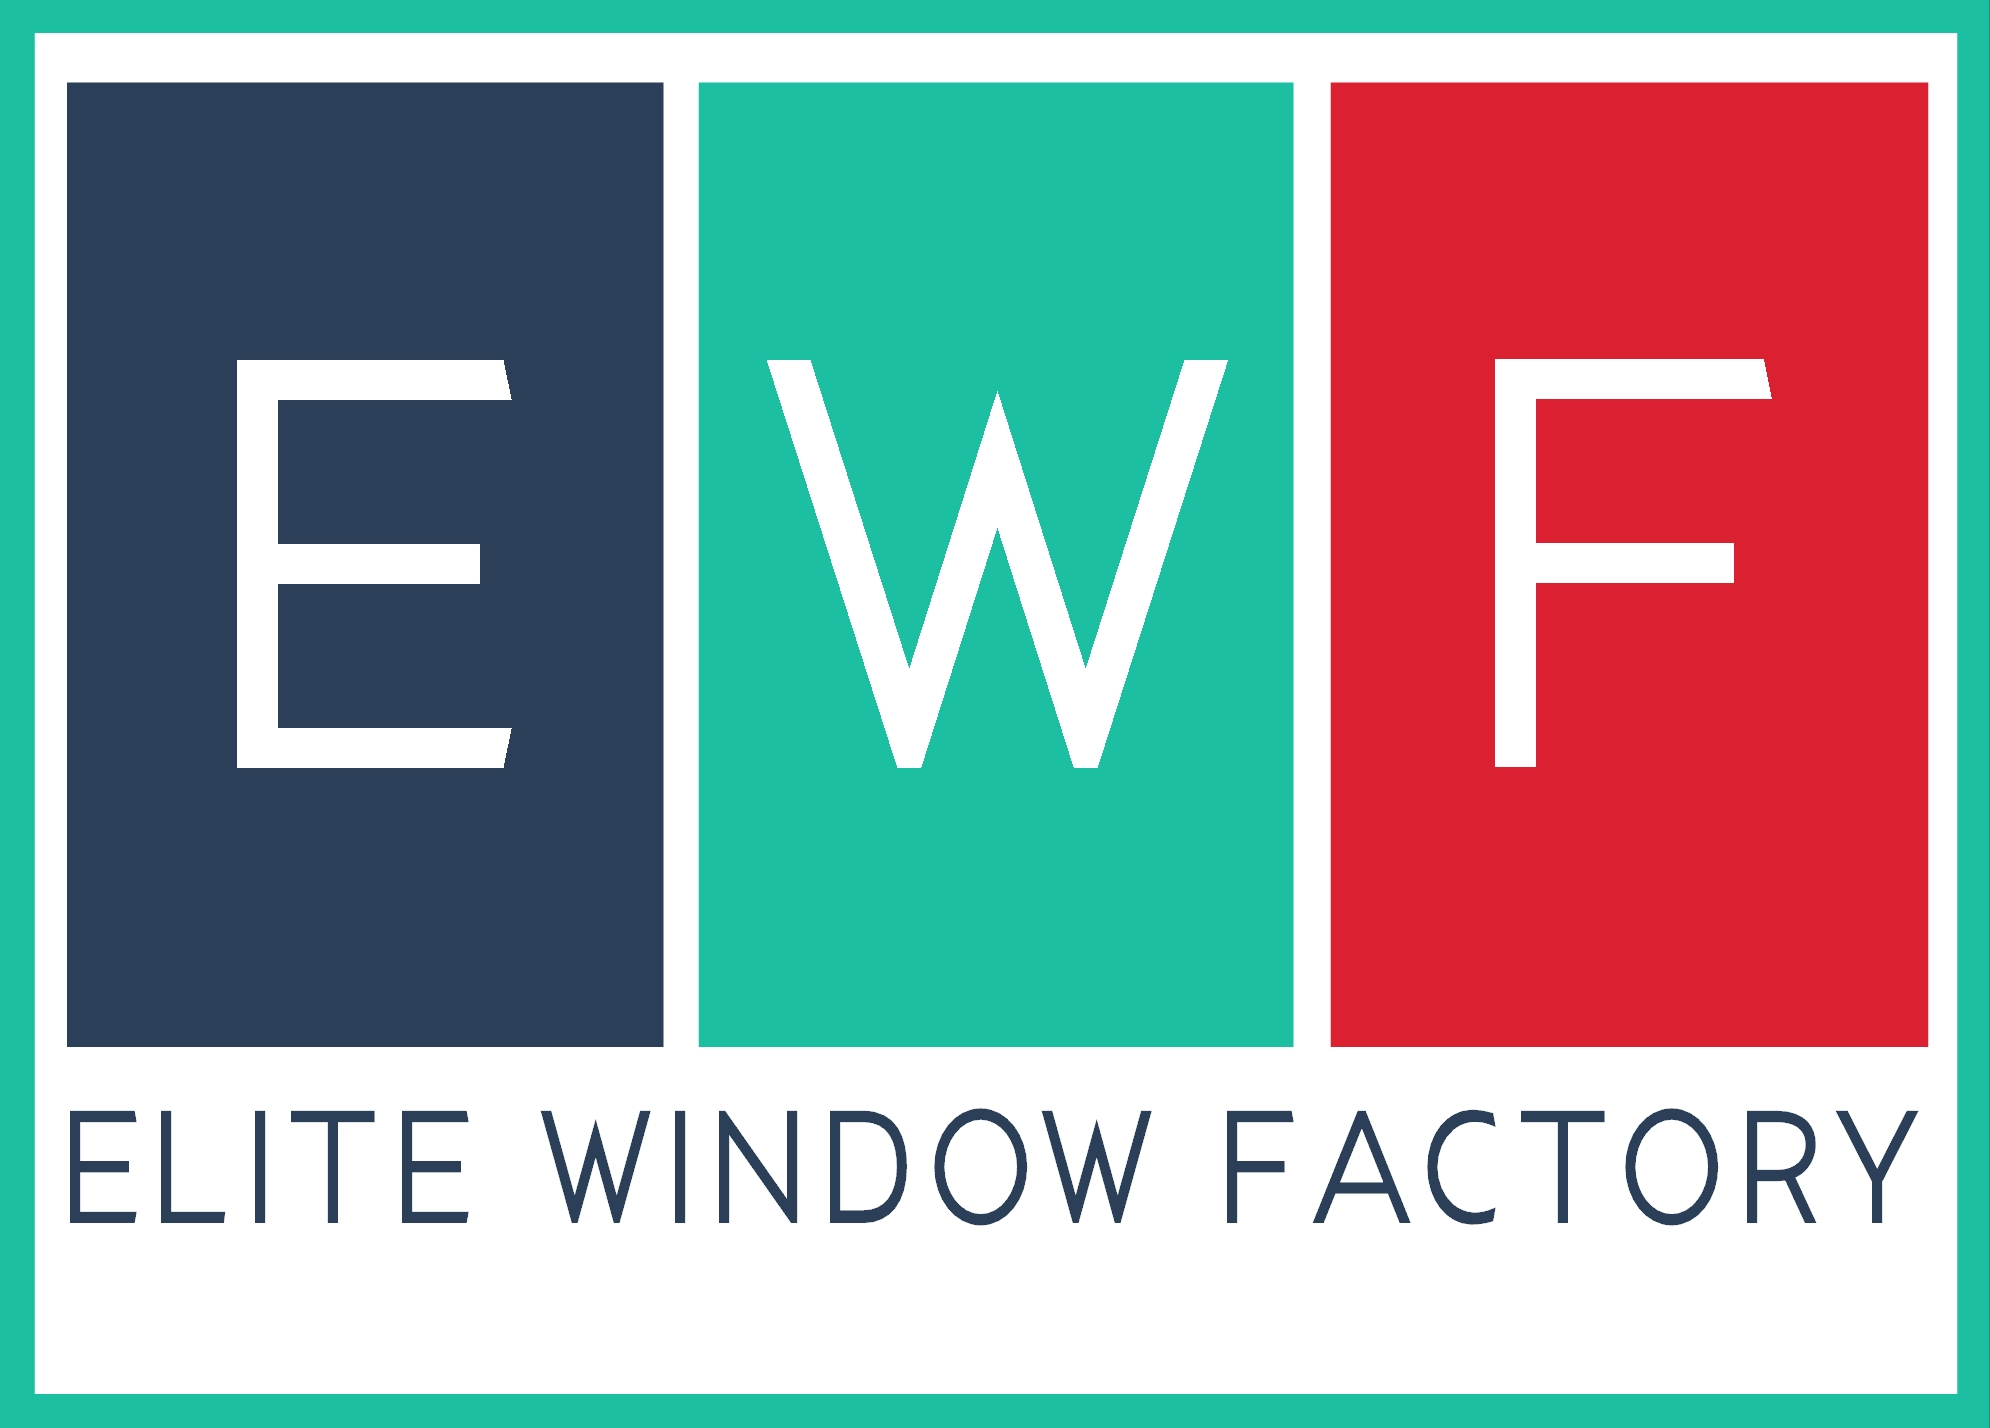 Doors manufacturer windows and doors manufacturer multi for Window factory